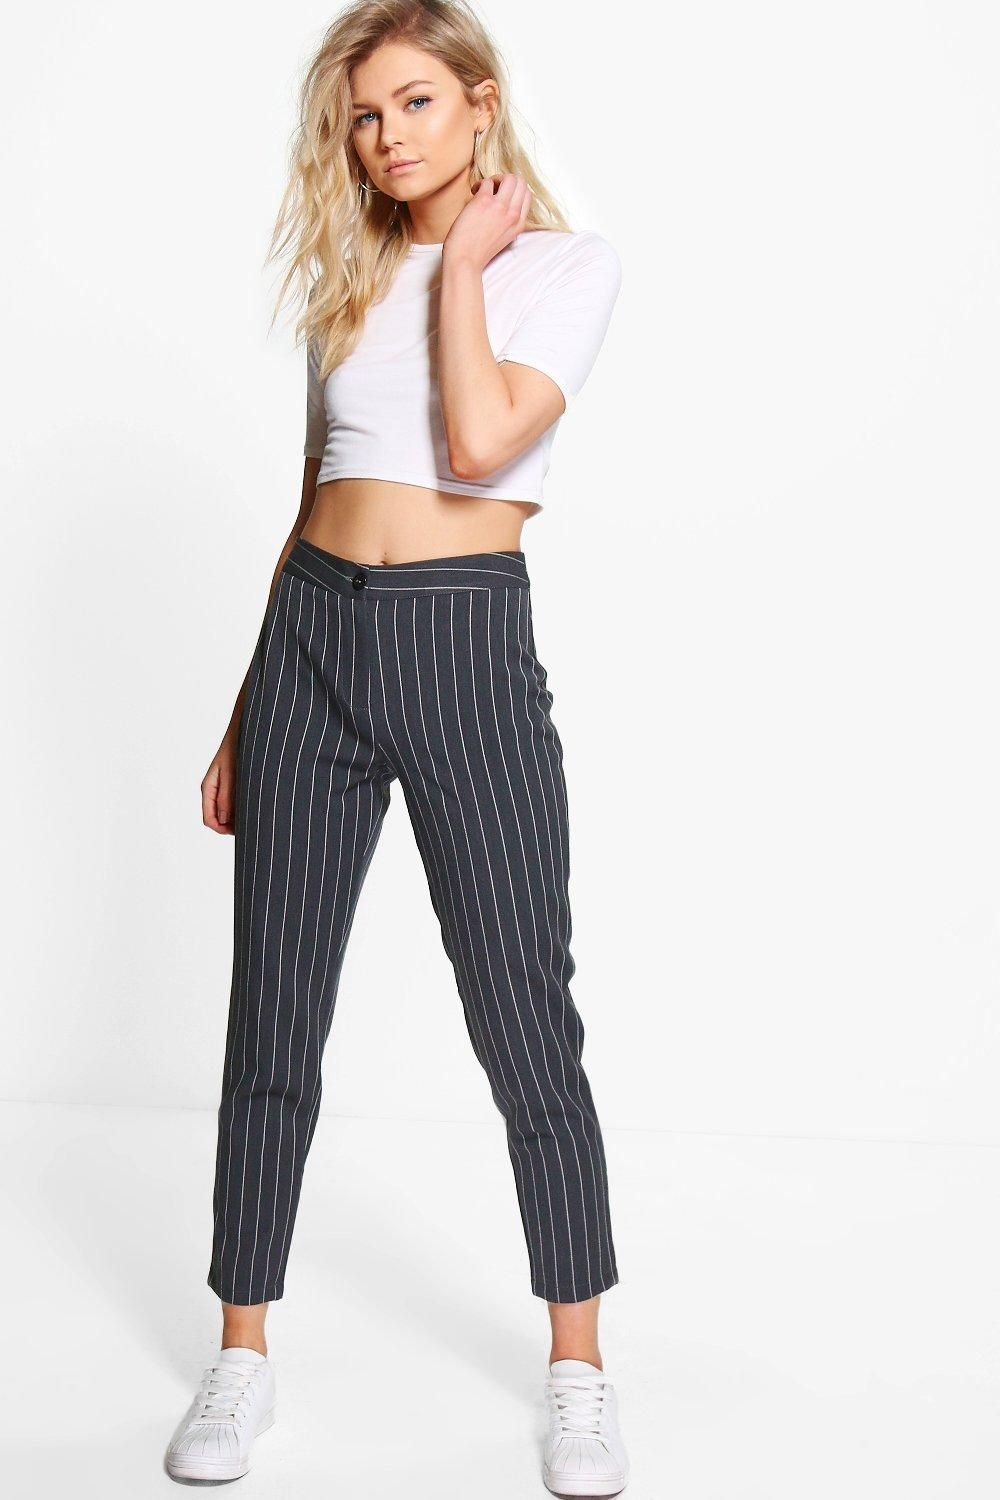 28b79270d4 Petite Stripe Tapered Pants in 2019 | Outfits | Tapered trousers ...